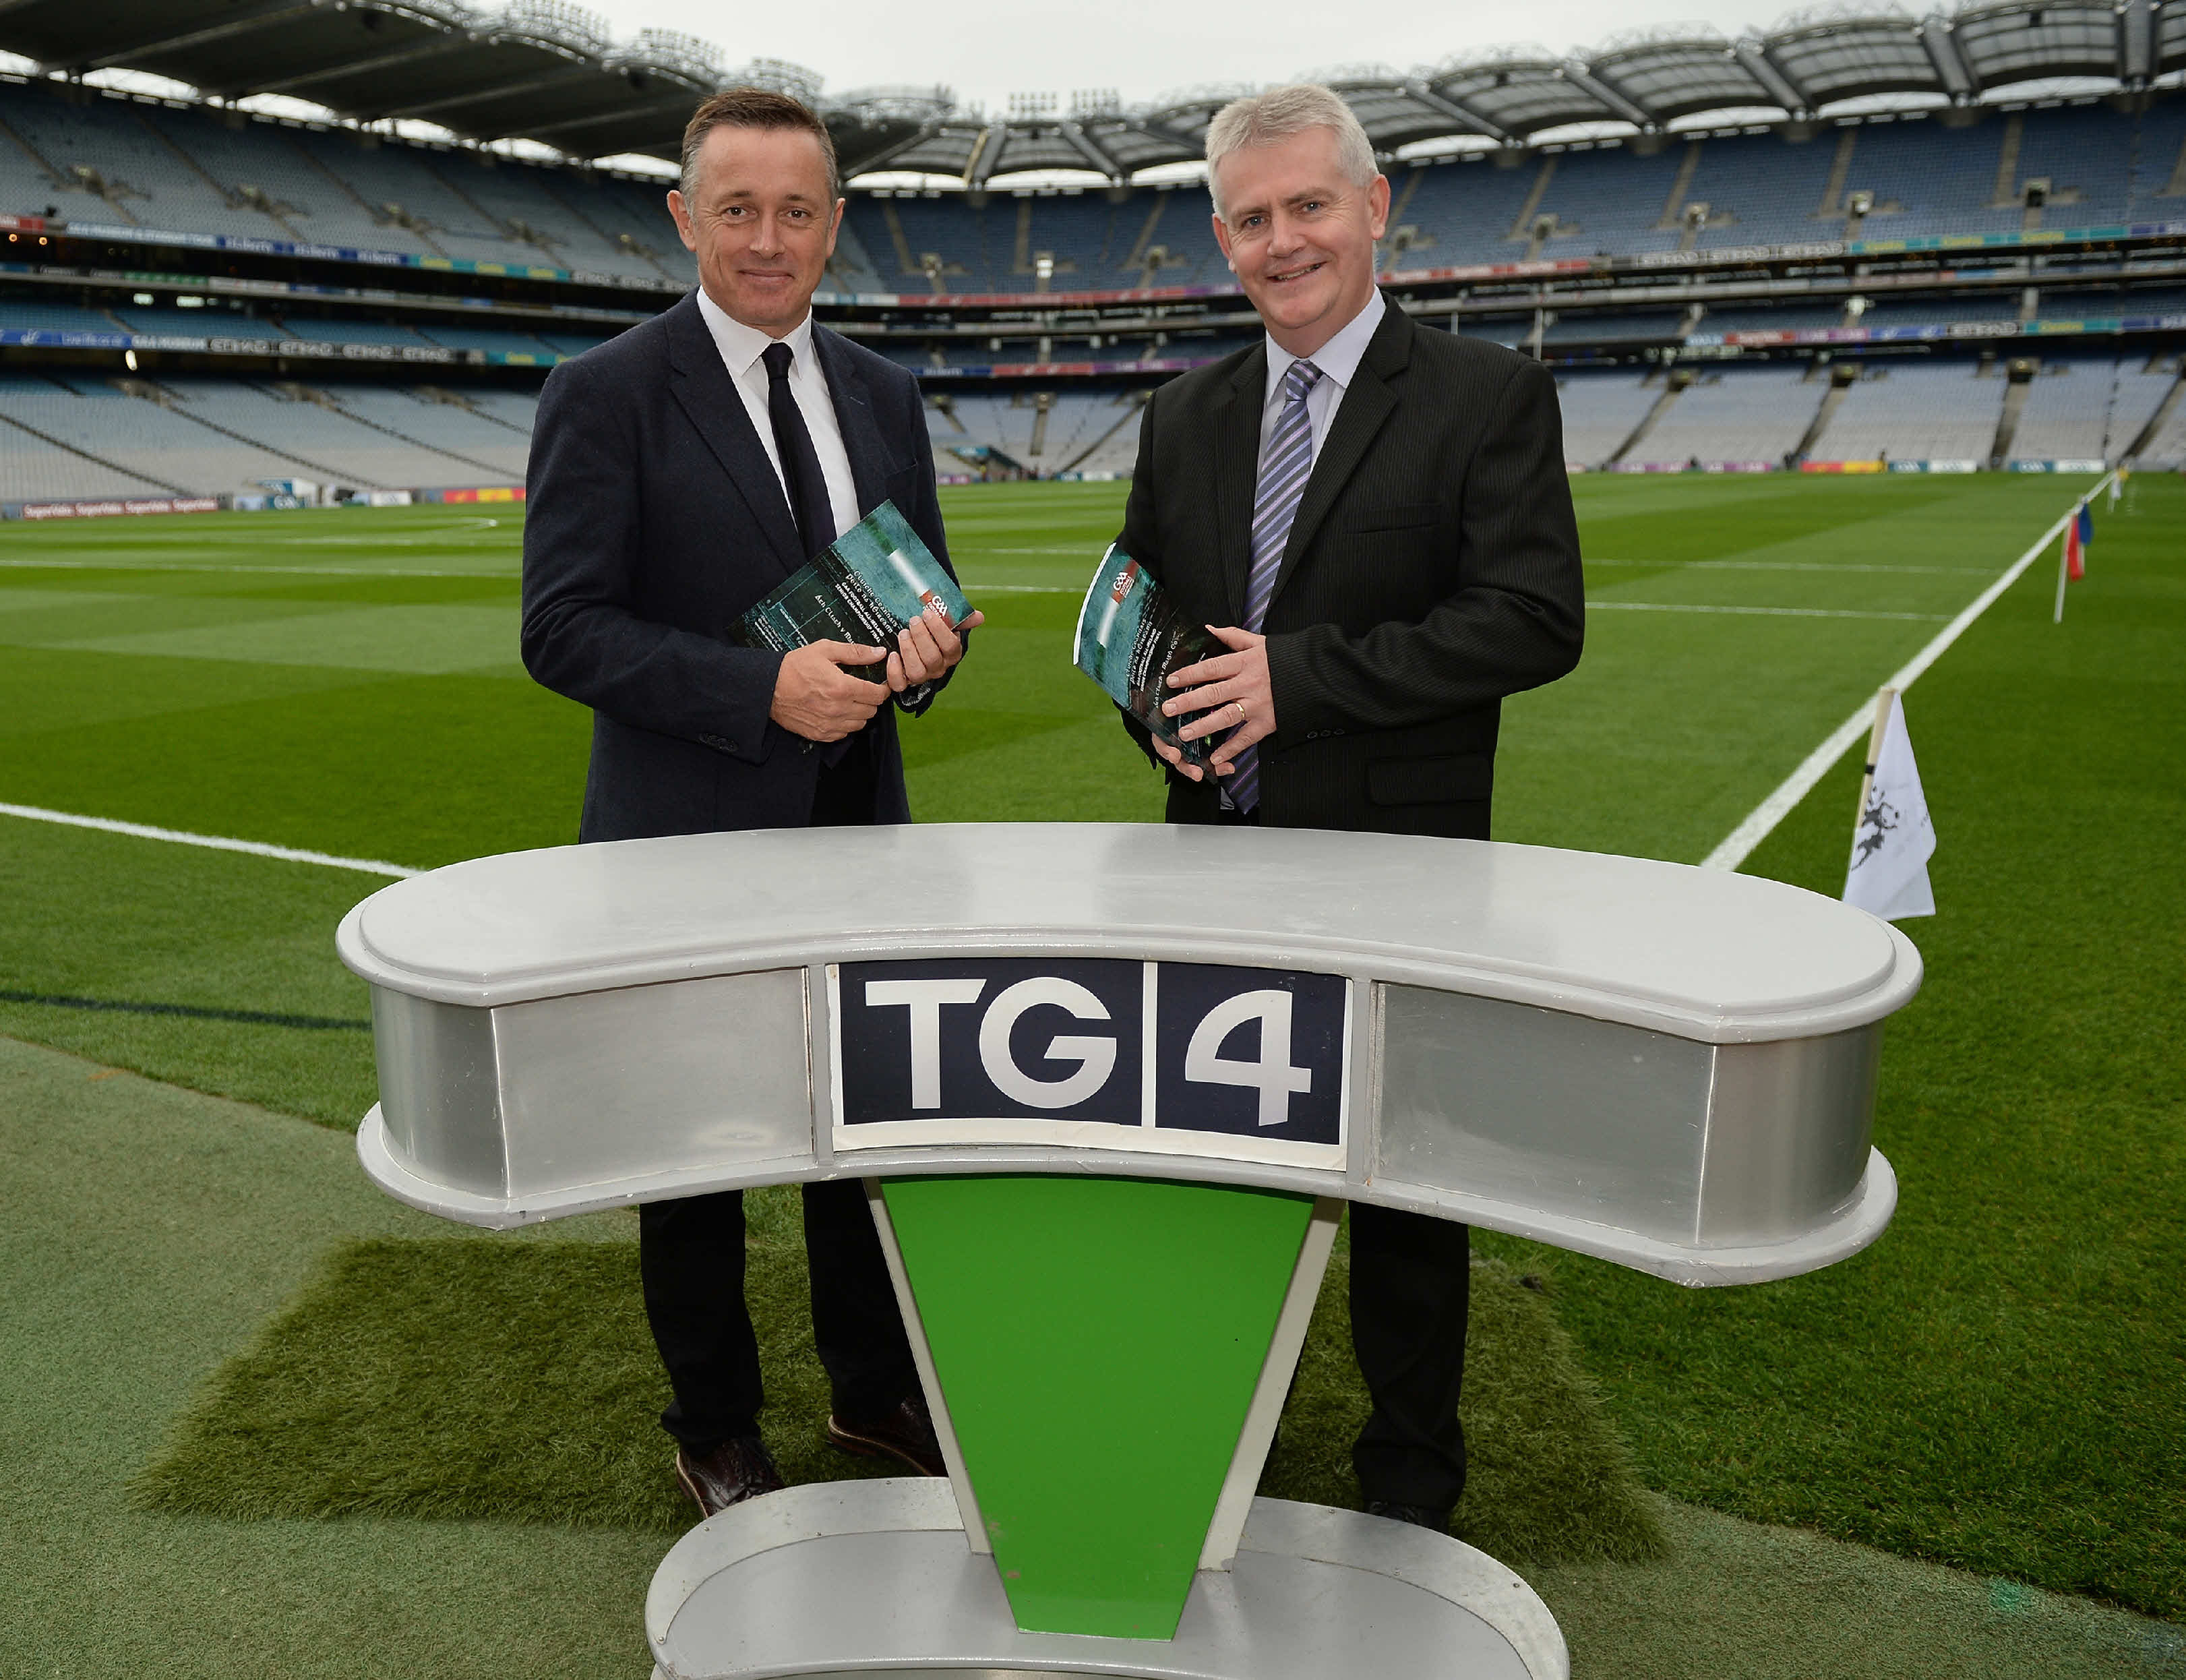 Live GAA back on TG4